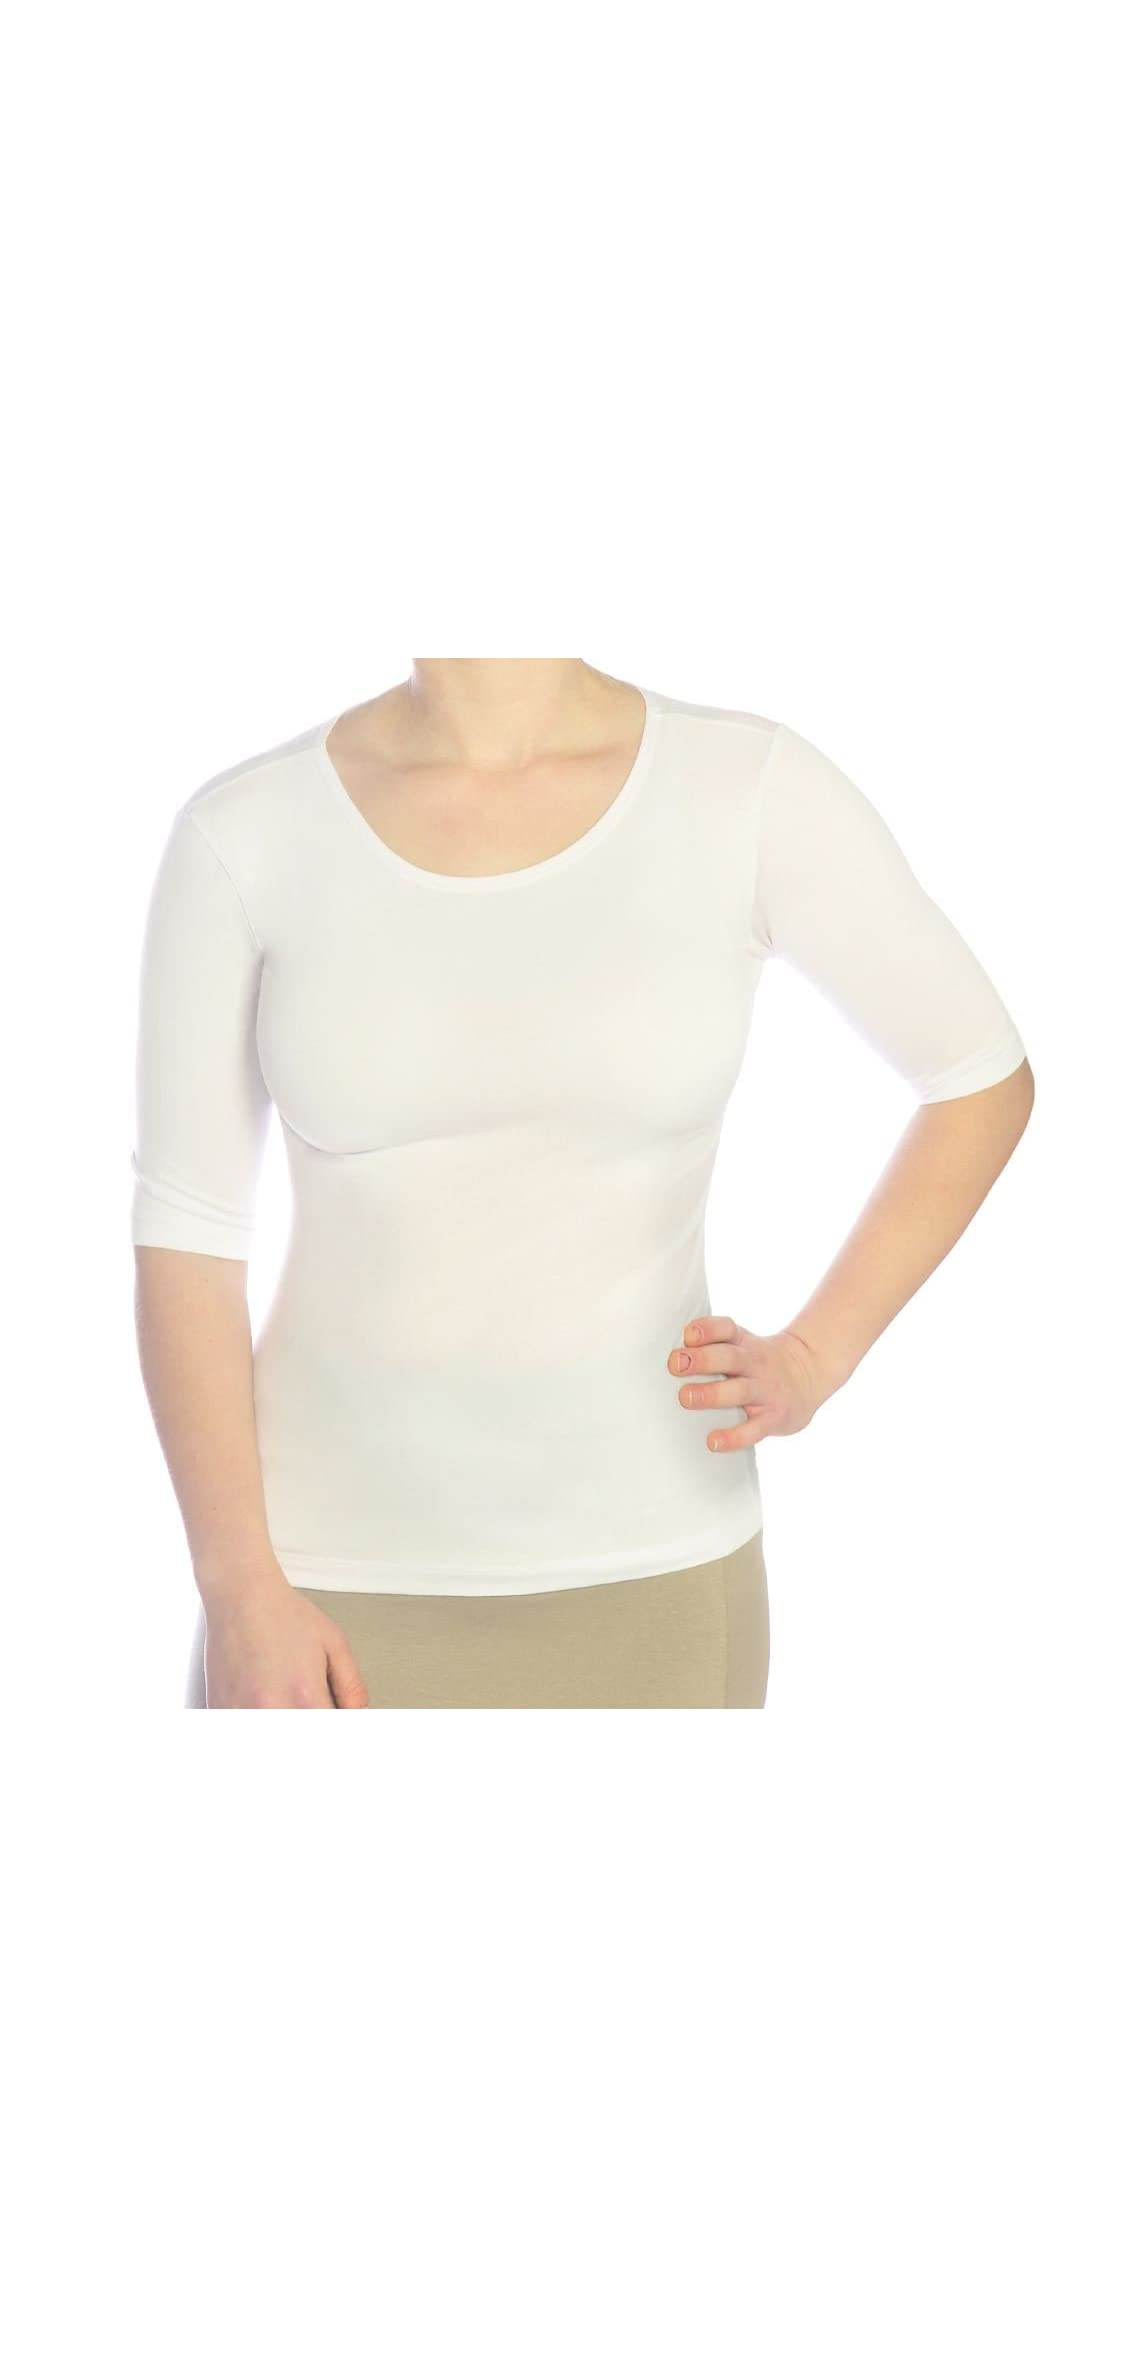 Women's Modest Boat Neck Fitted Layering Top With